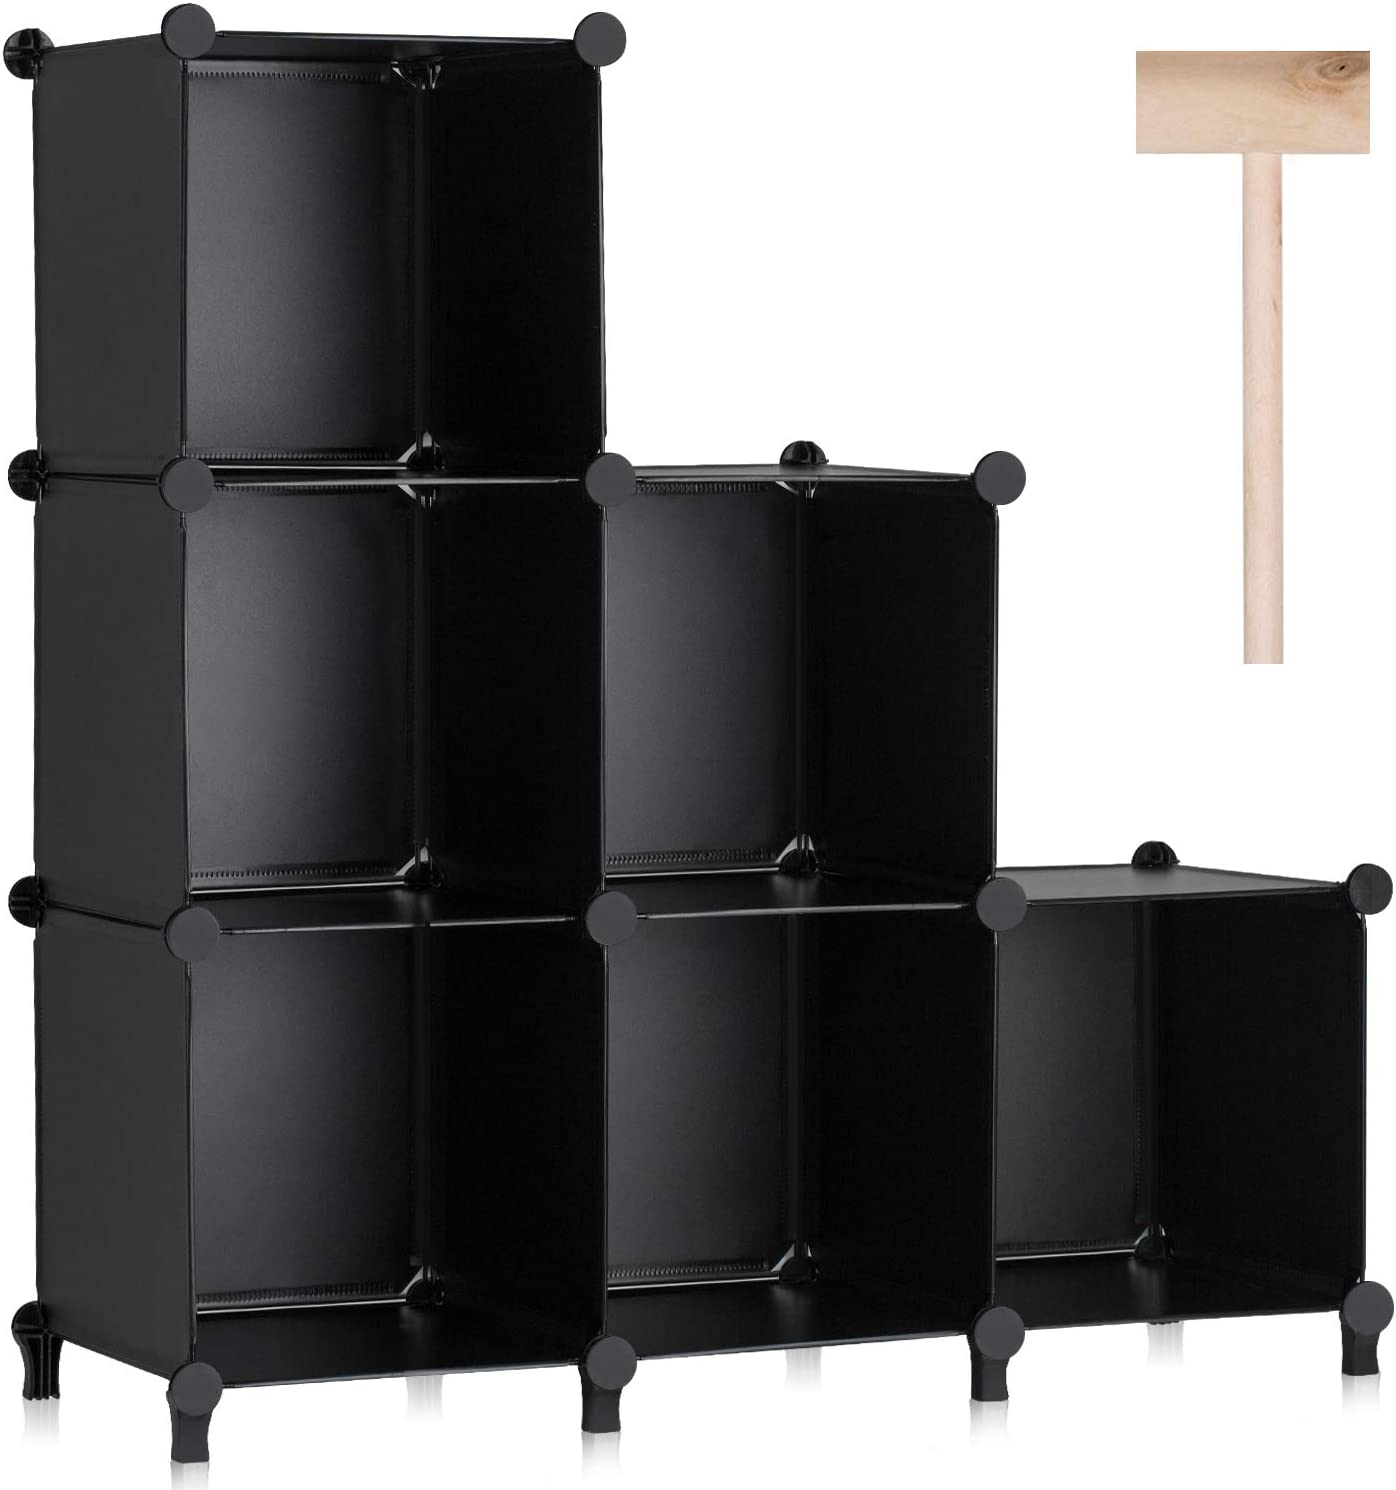 Puroma Cube Storage Organizer 6-Cube Closet Storage Shelves with Rubber Hammer DIY Closet Cabinet Bookshelf Plastic Square Organizer Shelving for Home, Office, Bedroom - Black